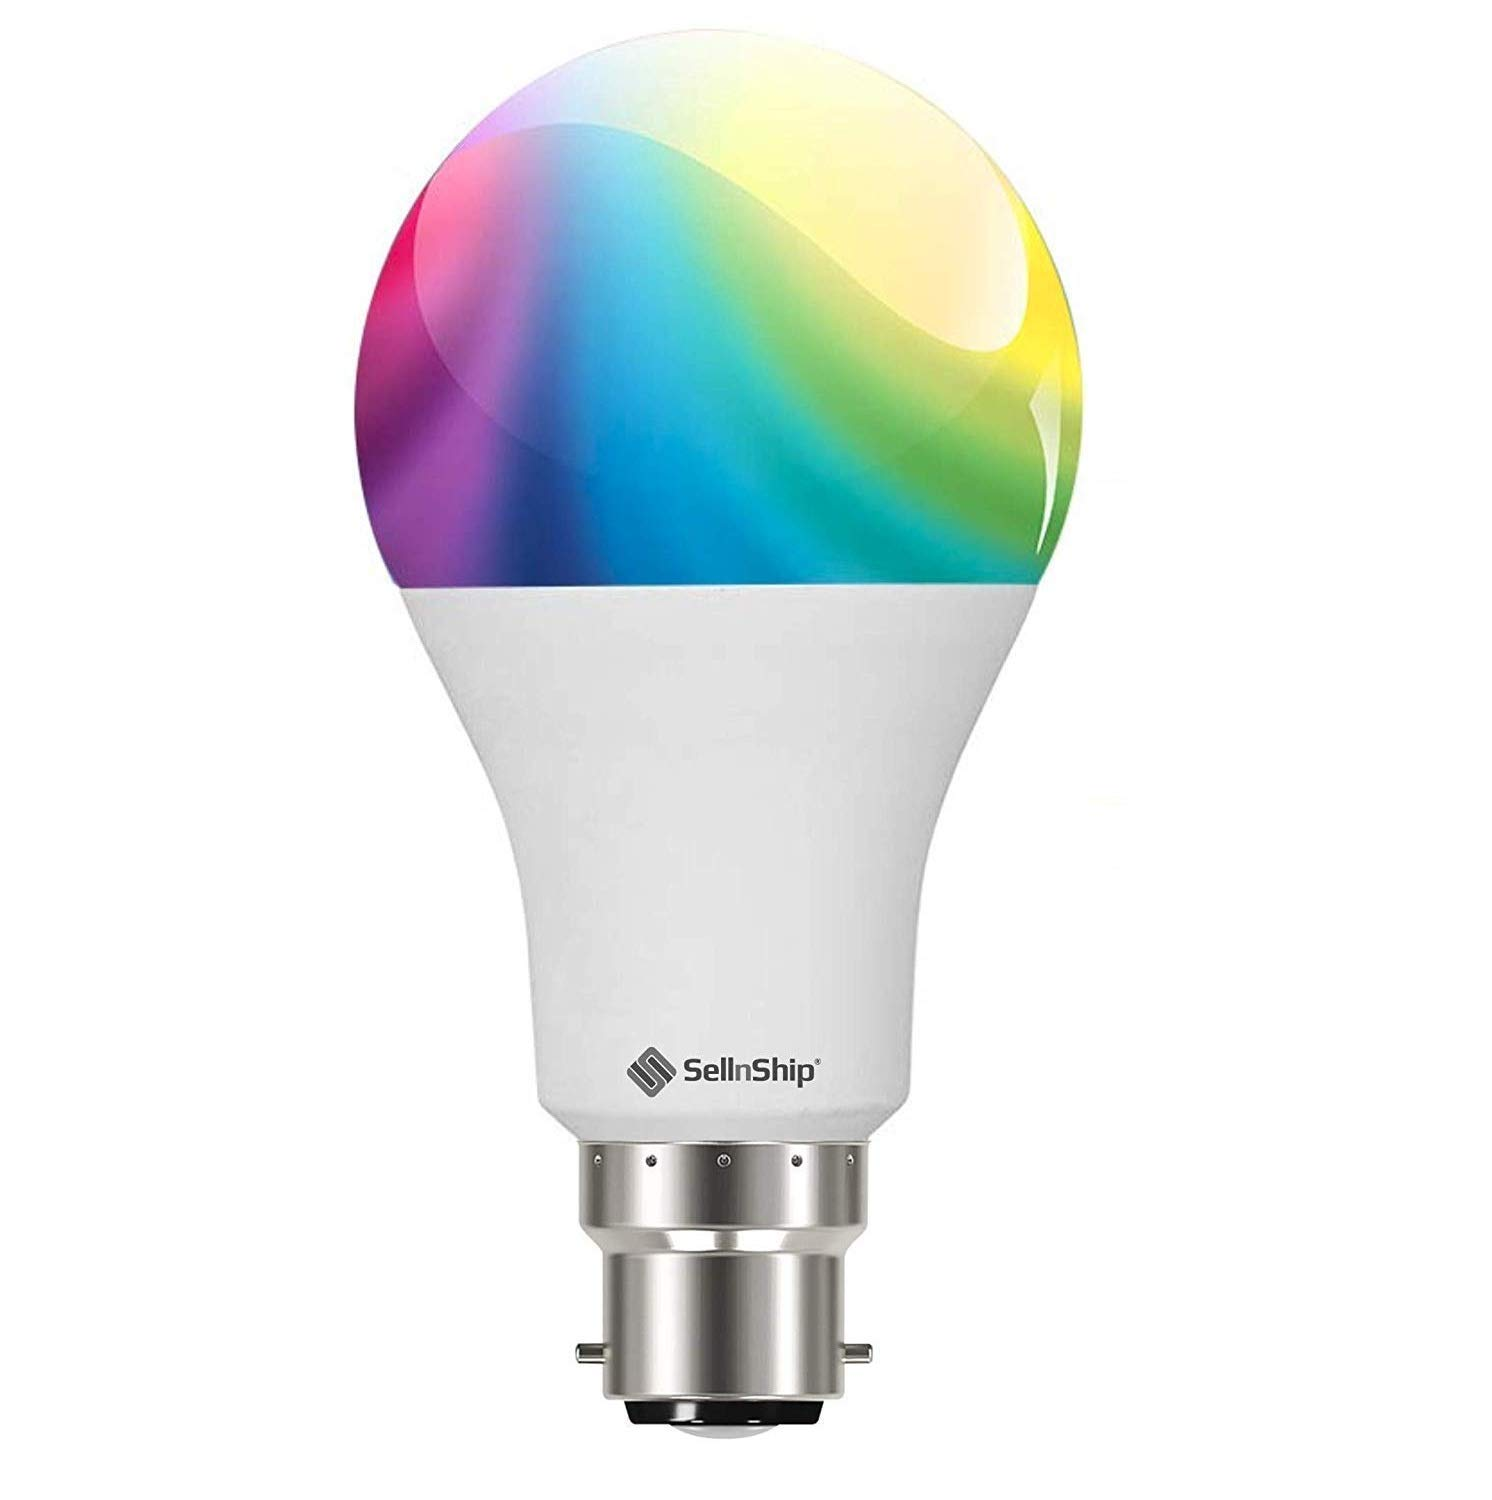 SellnShip B22 Socket Smart LED Bulb Compatible with Alexa WiFi Google Assistant (9 Watt; Warm White and RGB Multicolor)